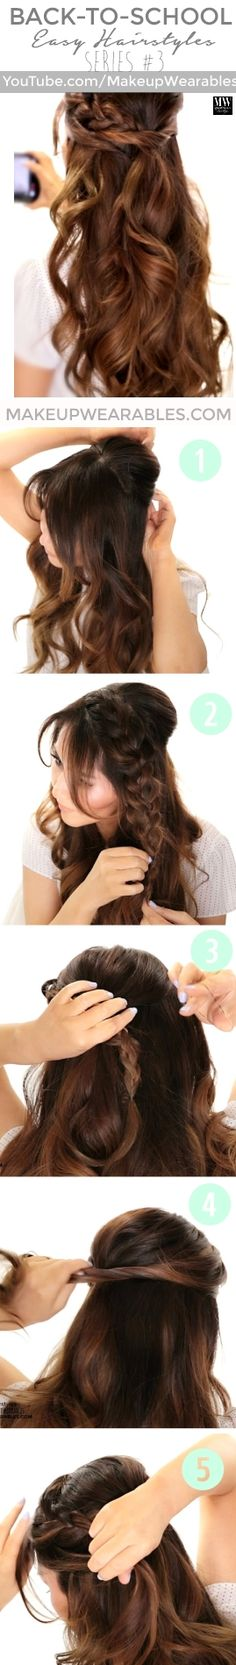 Easy Back-to-School #Hairstyles | Half-up with #curls | #Hair